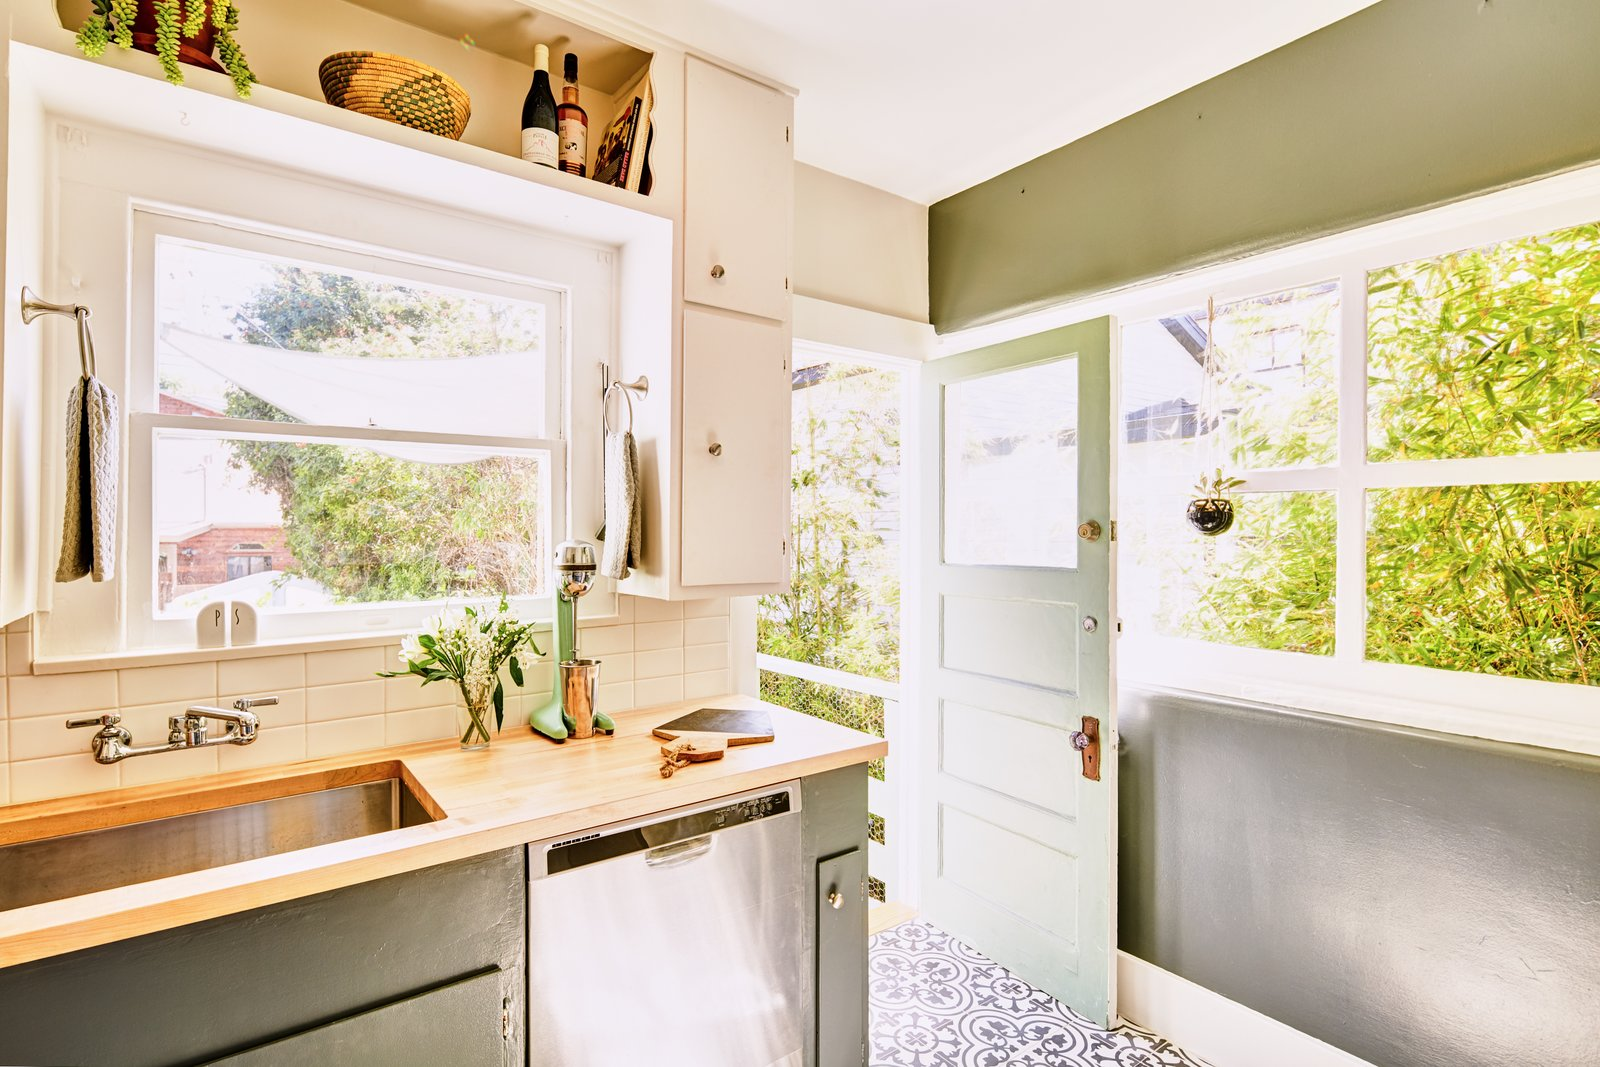 Kitchen, Cement Tile, Dishwasher, Wood, Colorful, Subway Tile, Undermount, and White Thanks to the ample natural light, the kitchen area maintains a warm brightness.    Best Kitchen White Cement Tile Photos from An Original Venice Craftsman With a Primetime Pedigree Is Listed For $2.75M